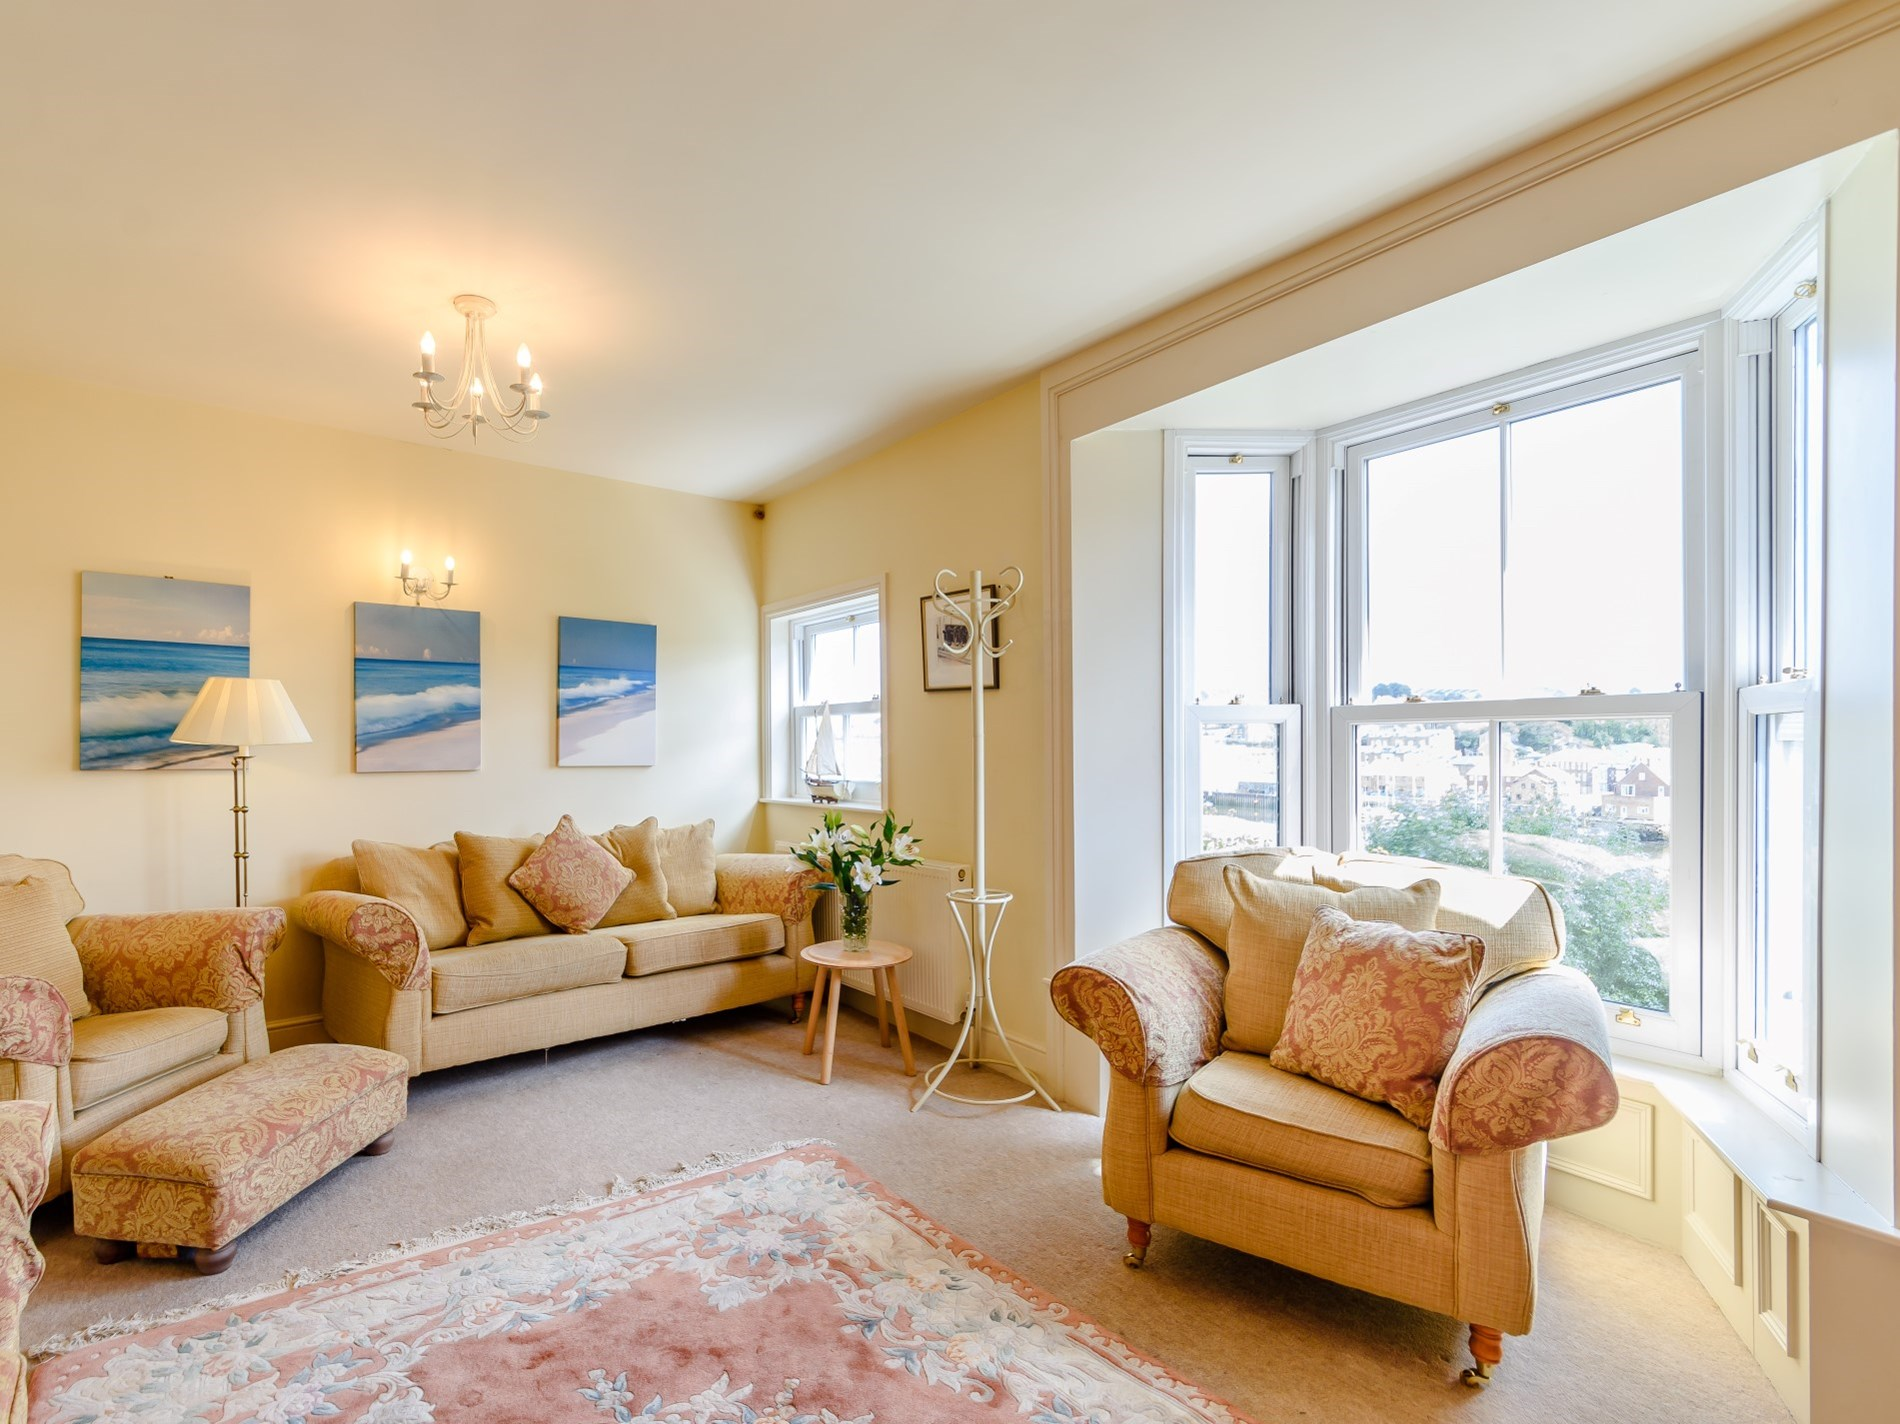 5 Bedroom Cottage in Whitby - Dog Friendly Cottage in ...